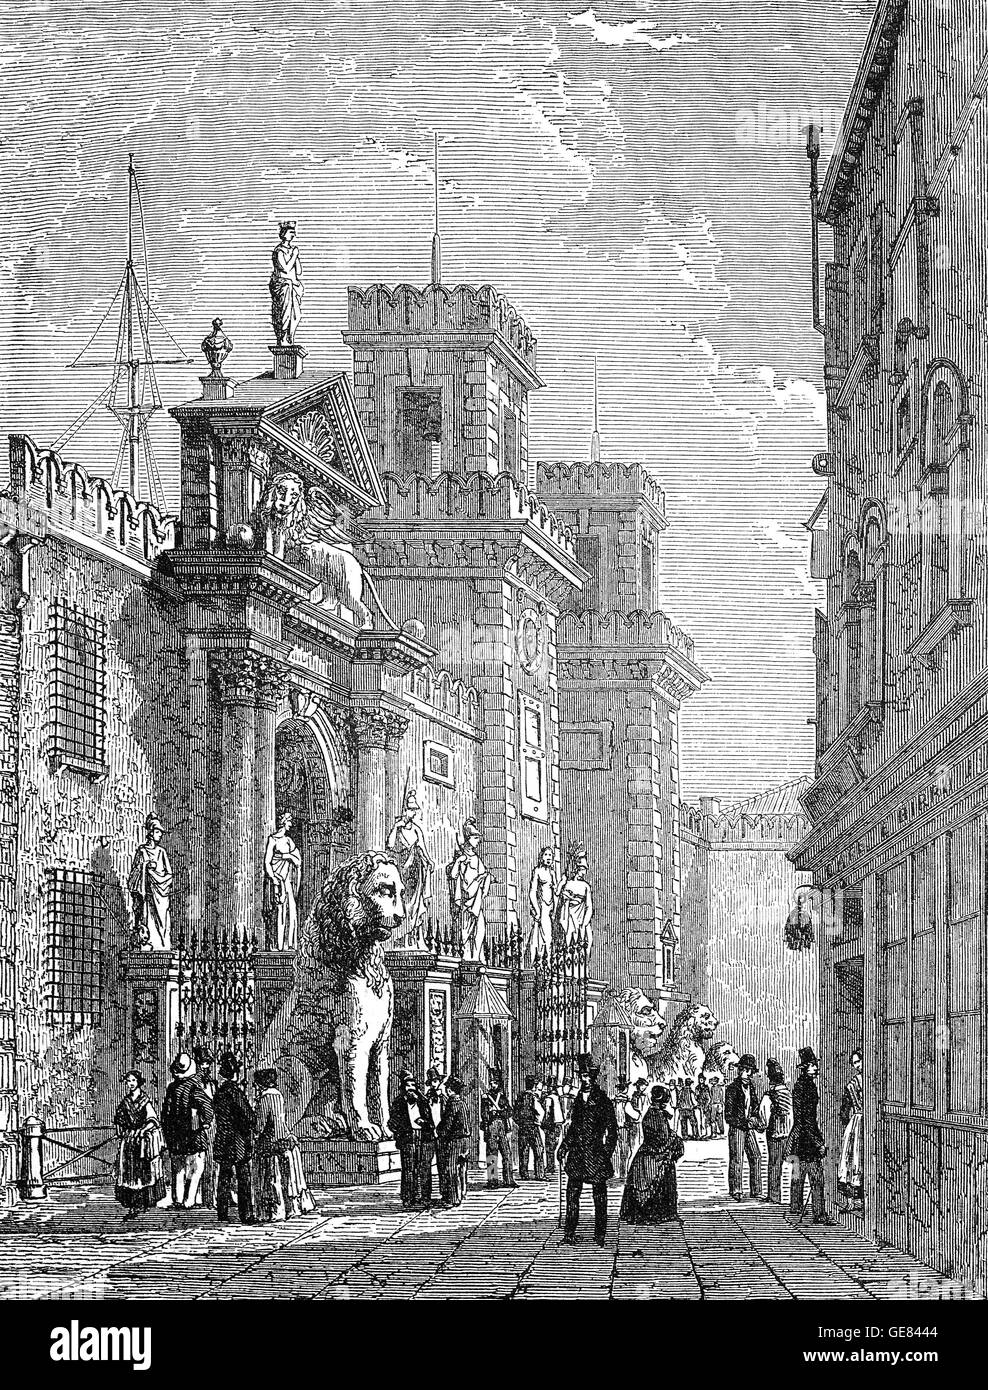 19th Century view of the entrance to the Venetian Arsenal, a complex of former shipyards and armories clustered - Stock Image